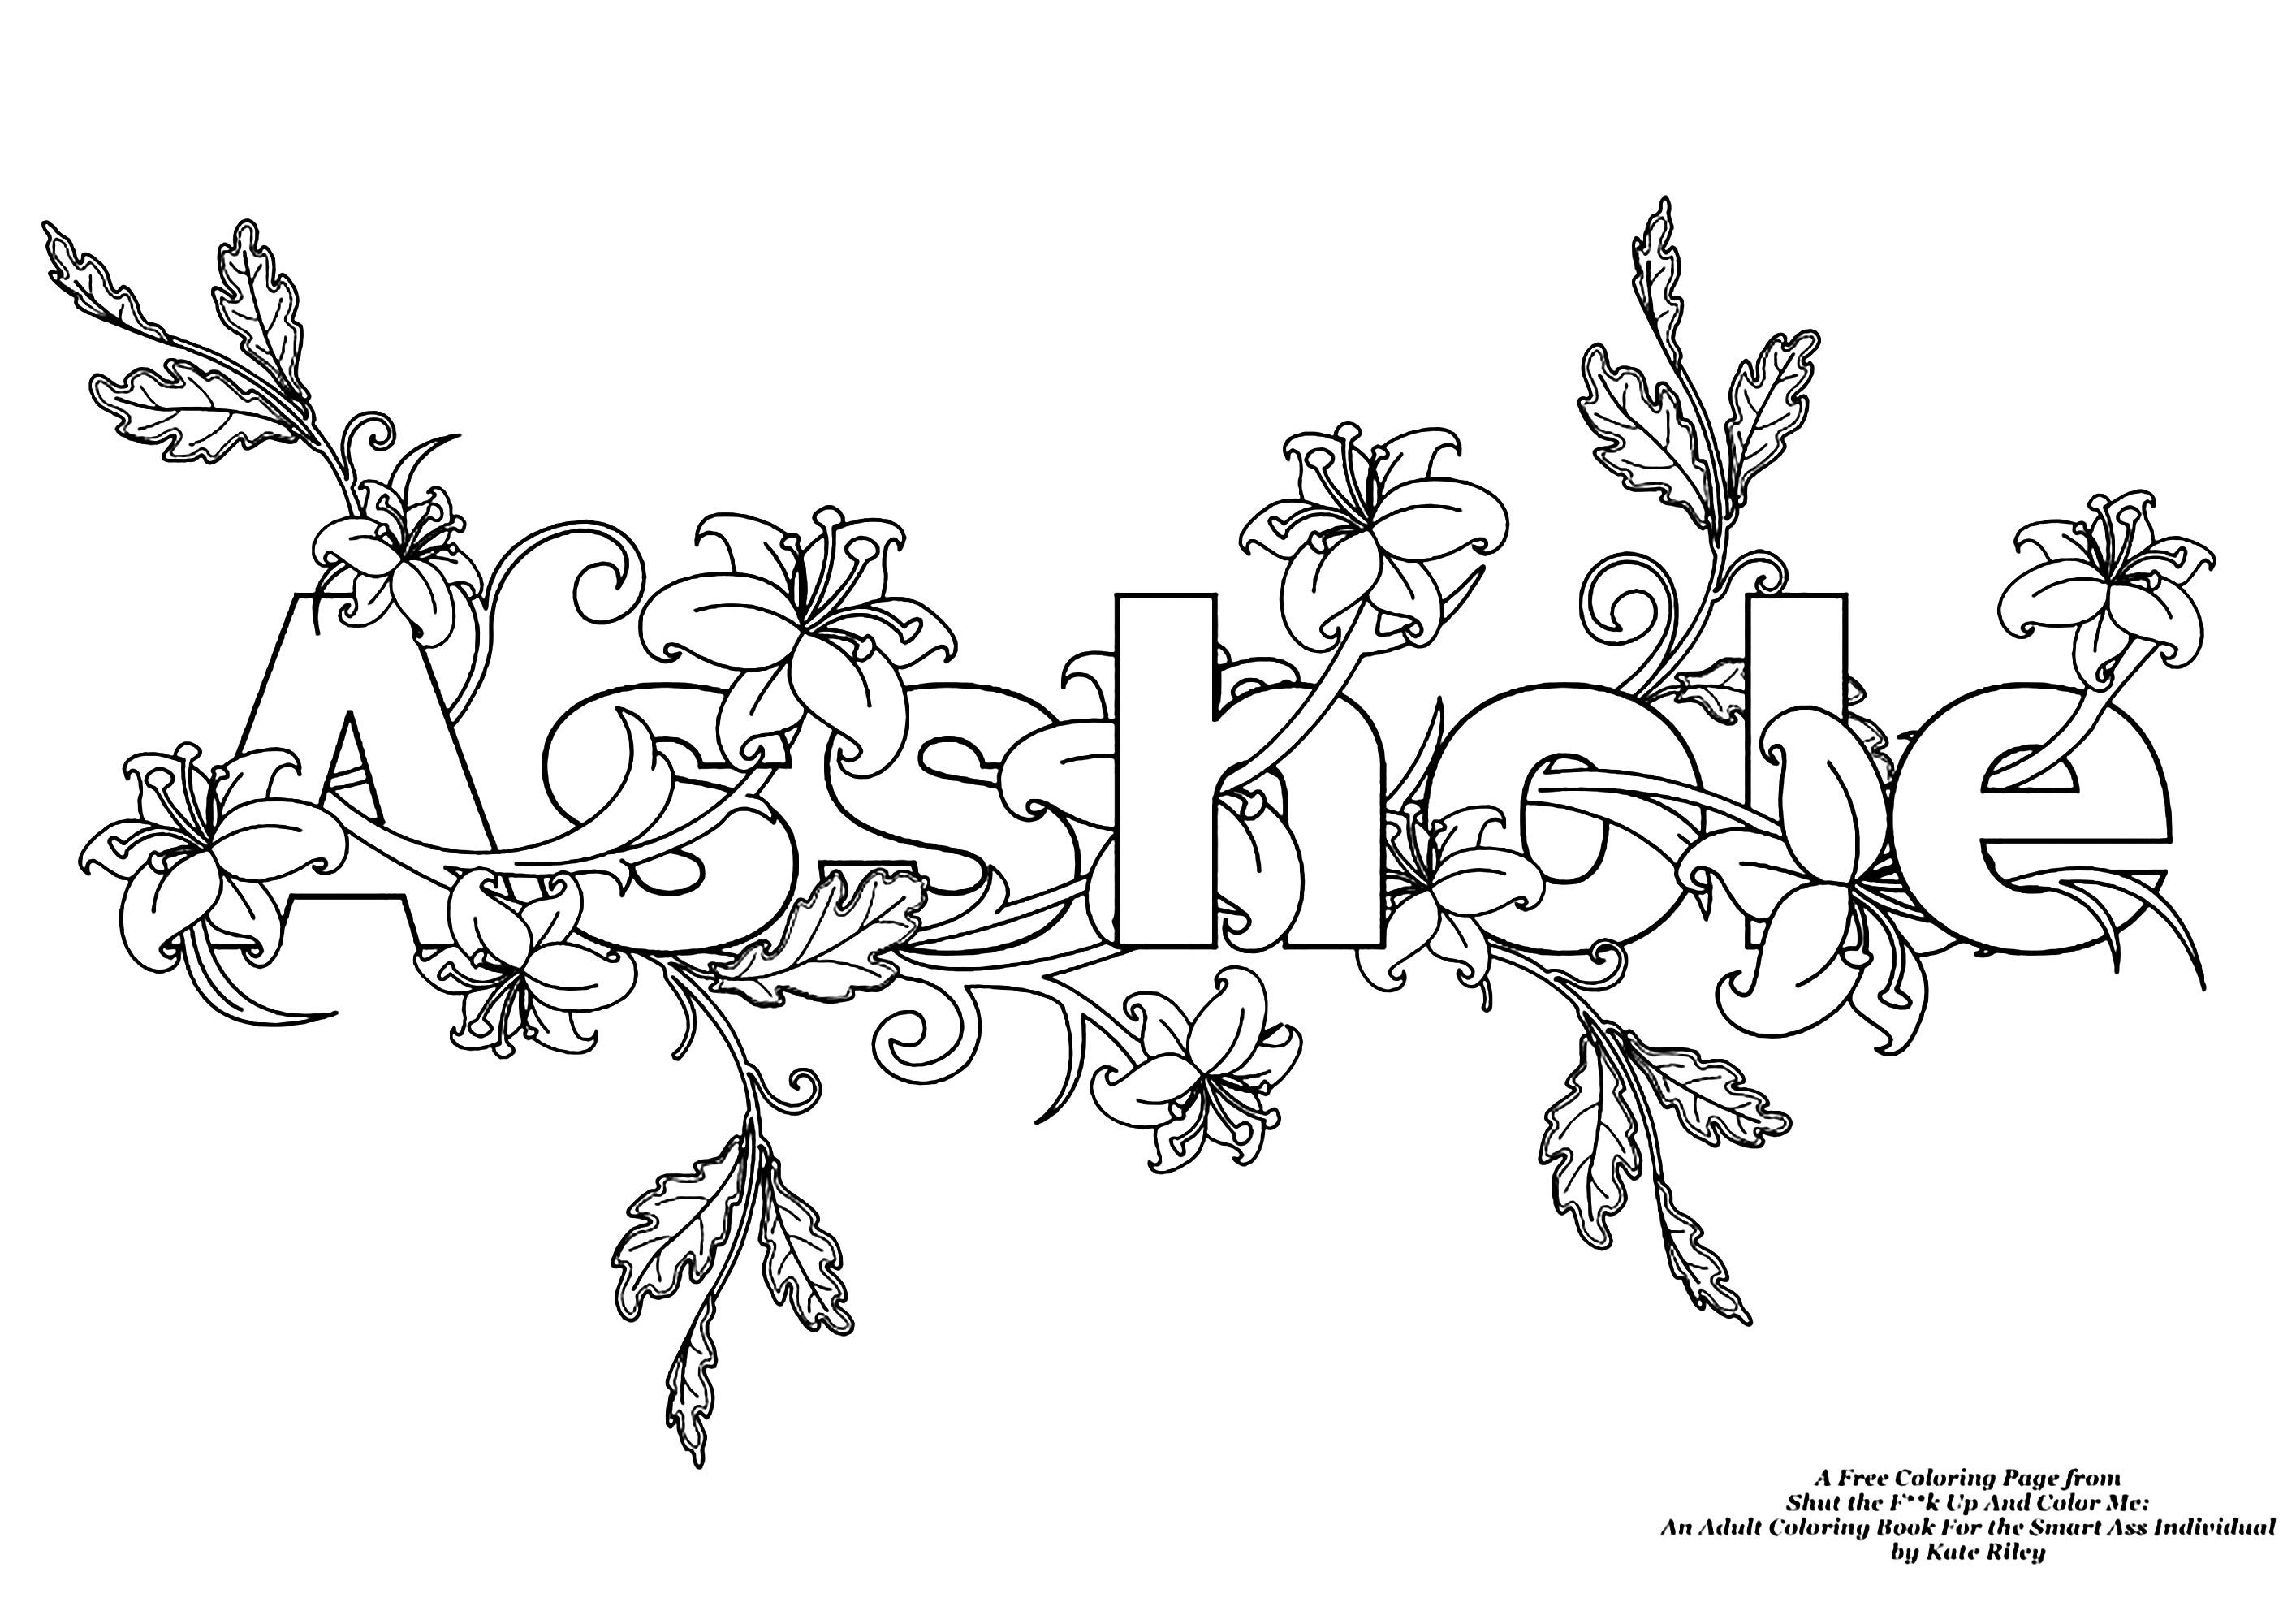 - AssholeSwear Word Coloring Page - Swear Word Coloring Pages For